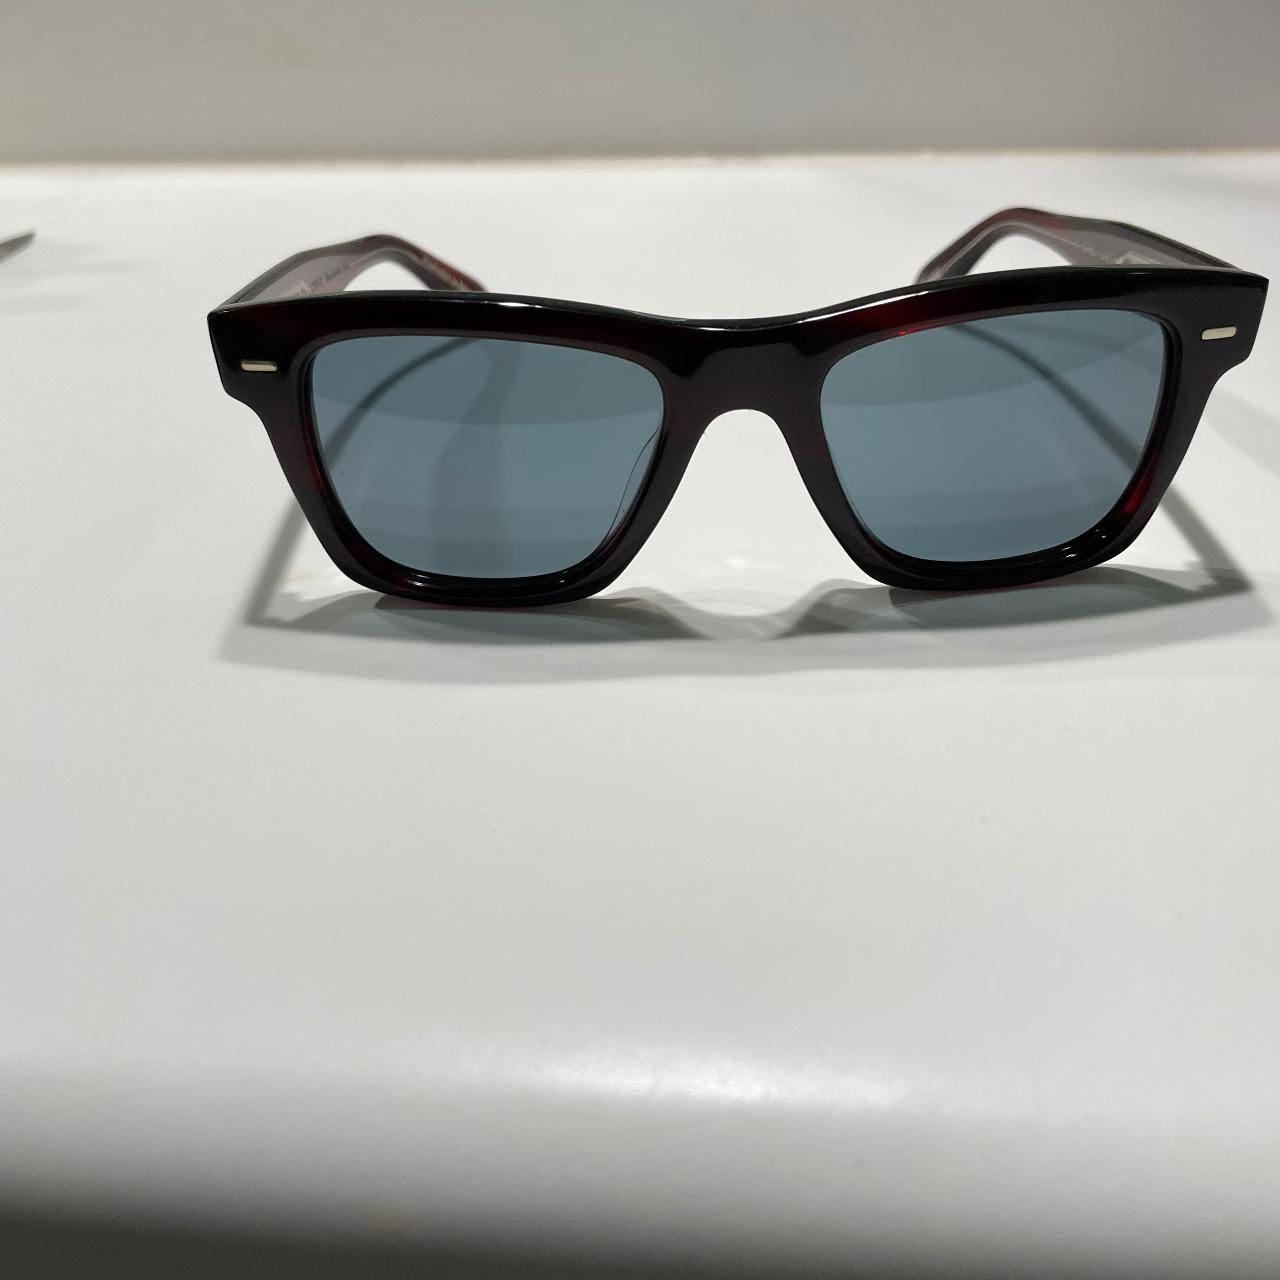 Product Image 1 - OLIVER PEOPLES Bordea 49mm Square